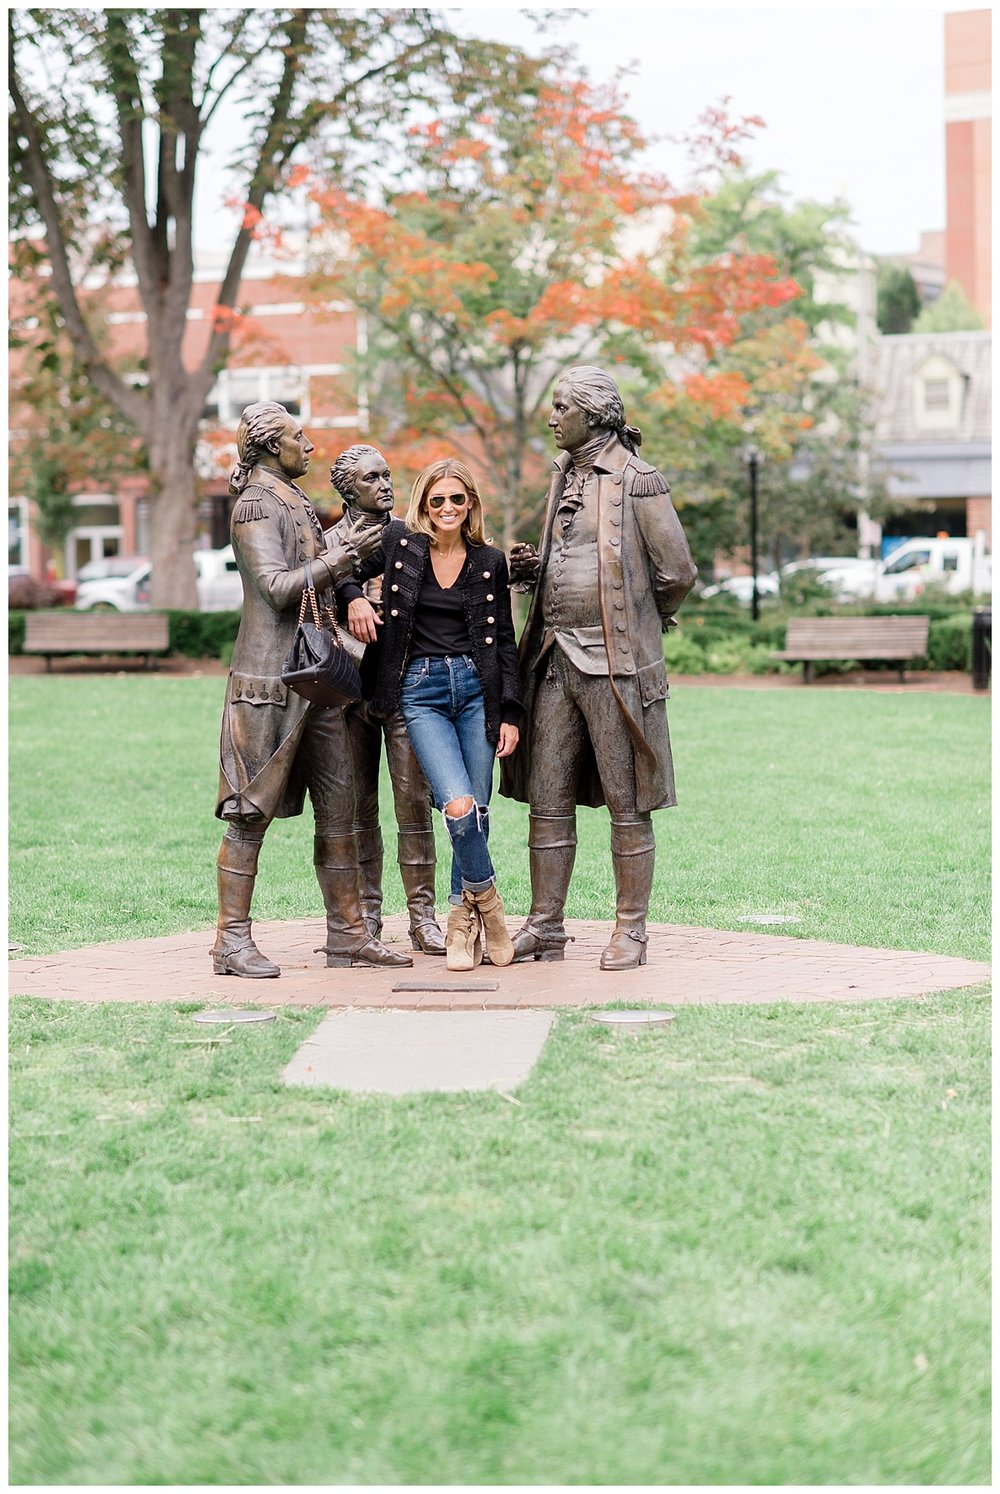 So,  this jacket  from Zara makes me feel like a cross between Michael Jackson and George Washington! The detail is amazing and it is only $150. I thought it was a appropriate to take my pic with these guys - George Washington, Marquis de Lafayette, and Alexander Hamilton on the green in Morristown. They didn't even mind holding my handbag! To keep this look casual, I grabbed a  light weight knit  from Zara to go under the jacket, my favorite  Citizens of Humanity jeans  and the  MUST-HAVE booties  for Fall.